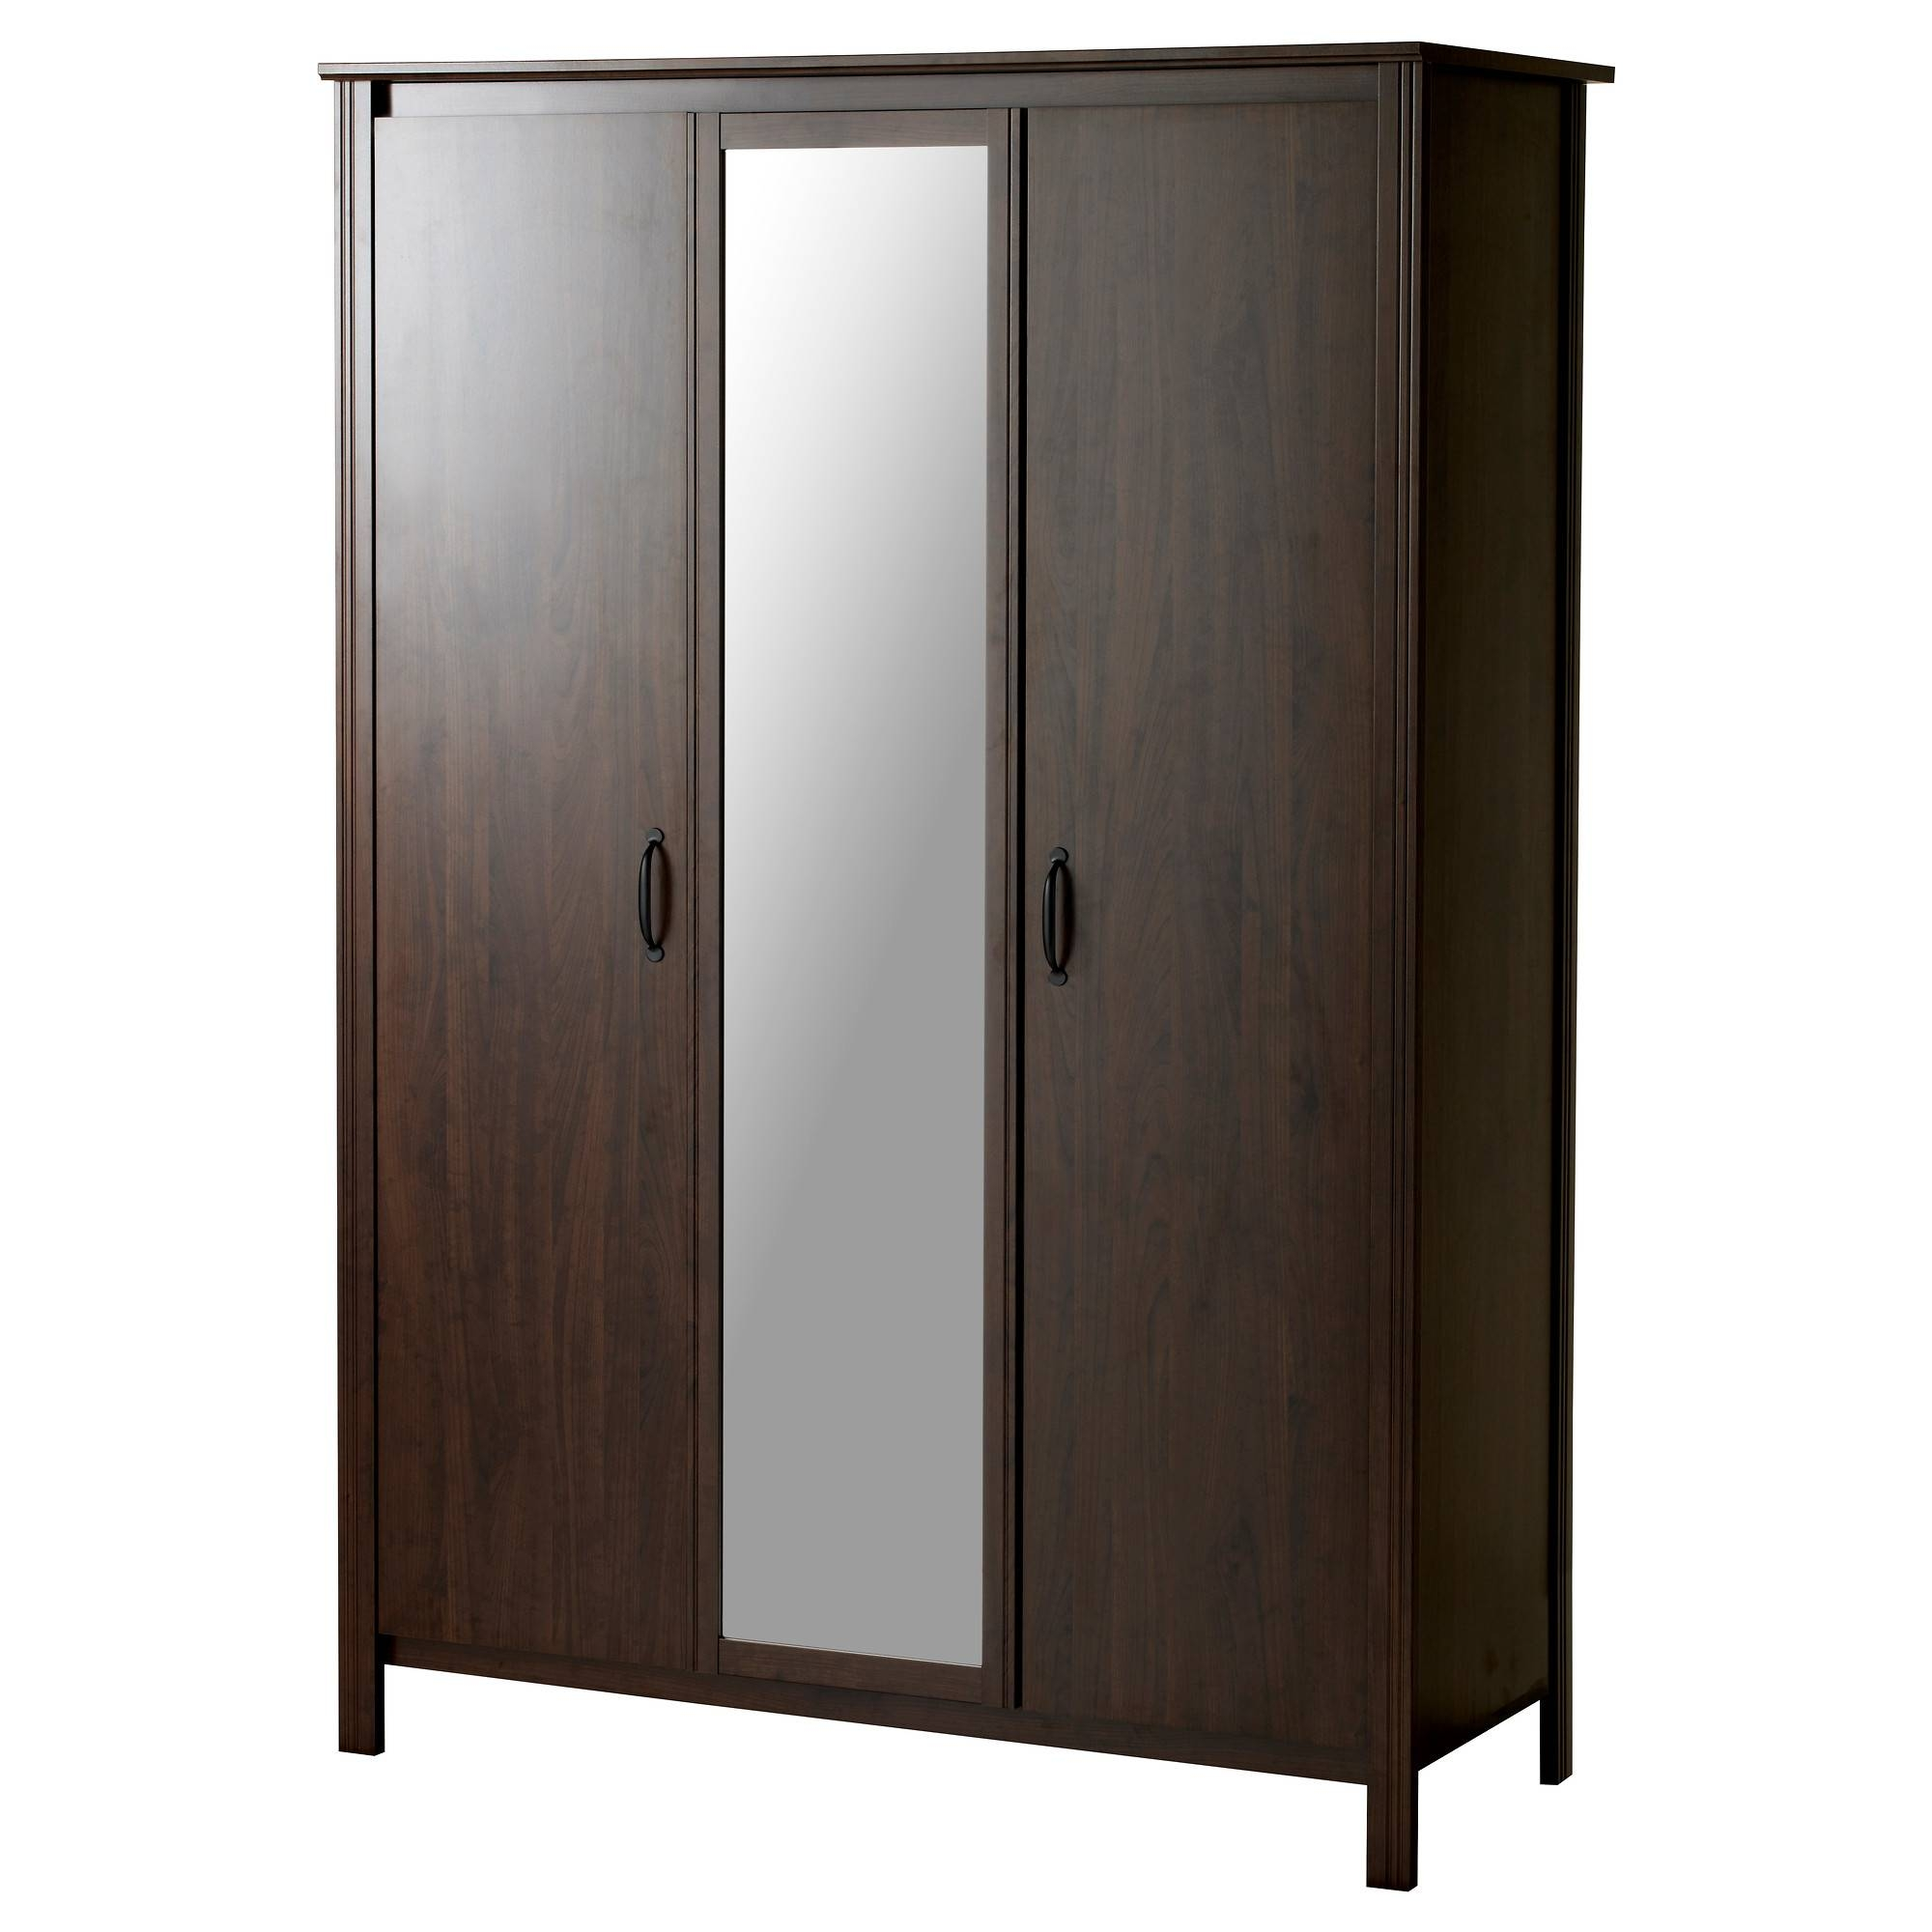 Wardrobes, Armoires & Closets - Ikea with regard to Cheap 3 Door Wardrobes (Image 14 of 15)